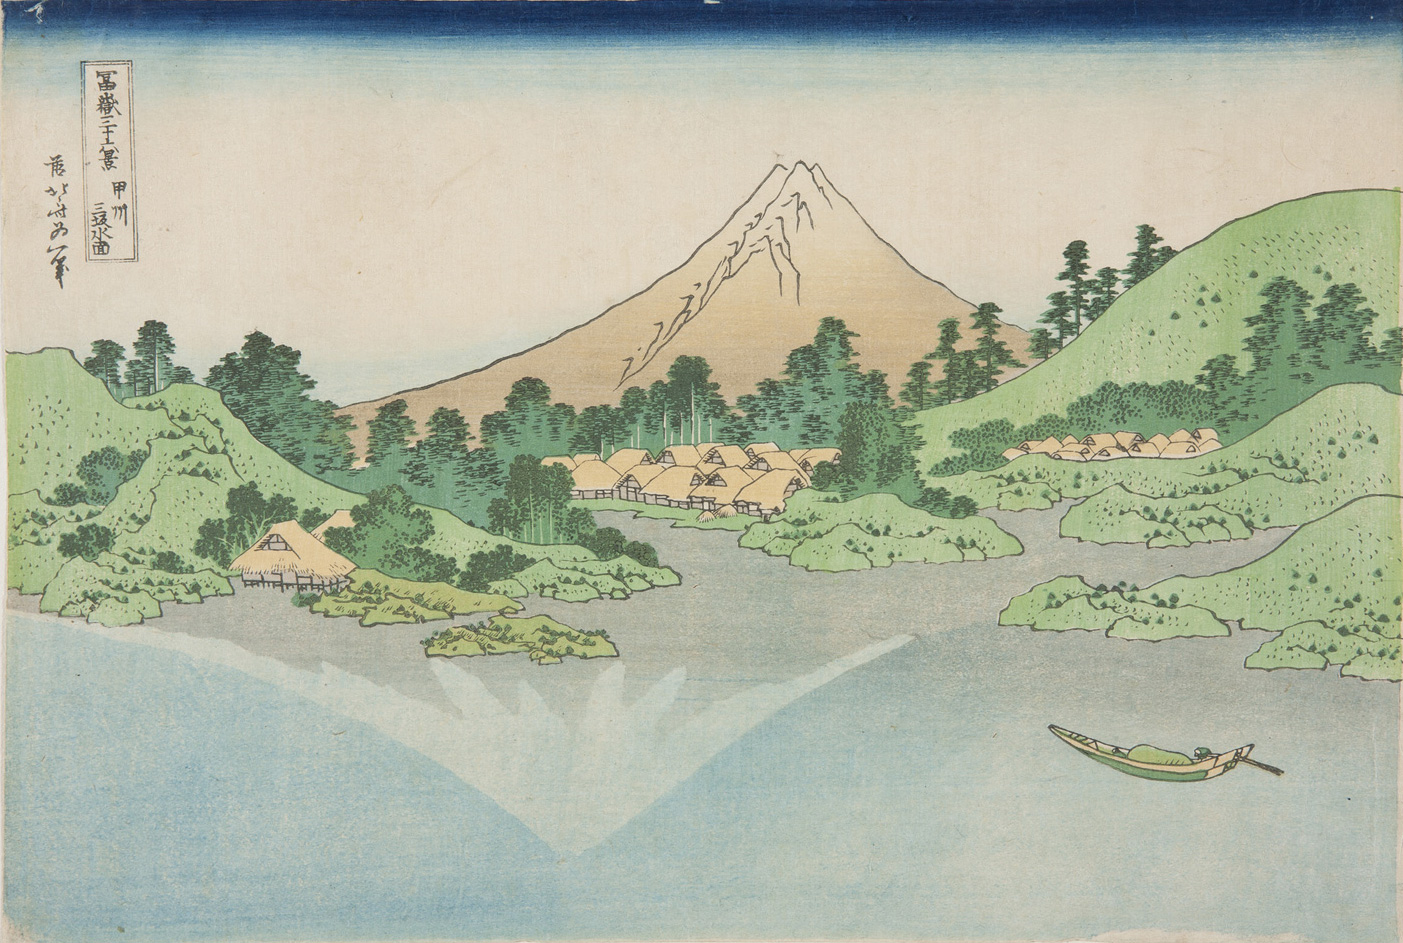 Japanese print of a landscape showing the reflection of the mountain in Lake Misaka. In the foreground is the calm lake and a small boat. In the mid distance is the shore with green hills, inlets and villages. The mountain rises up behind.